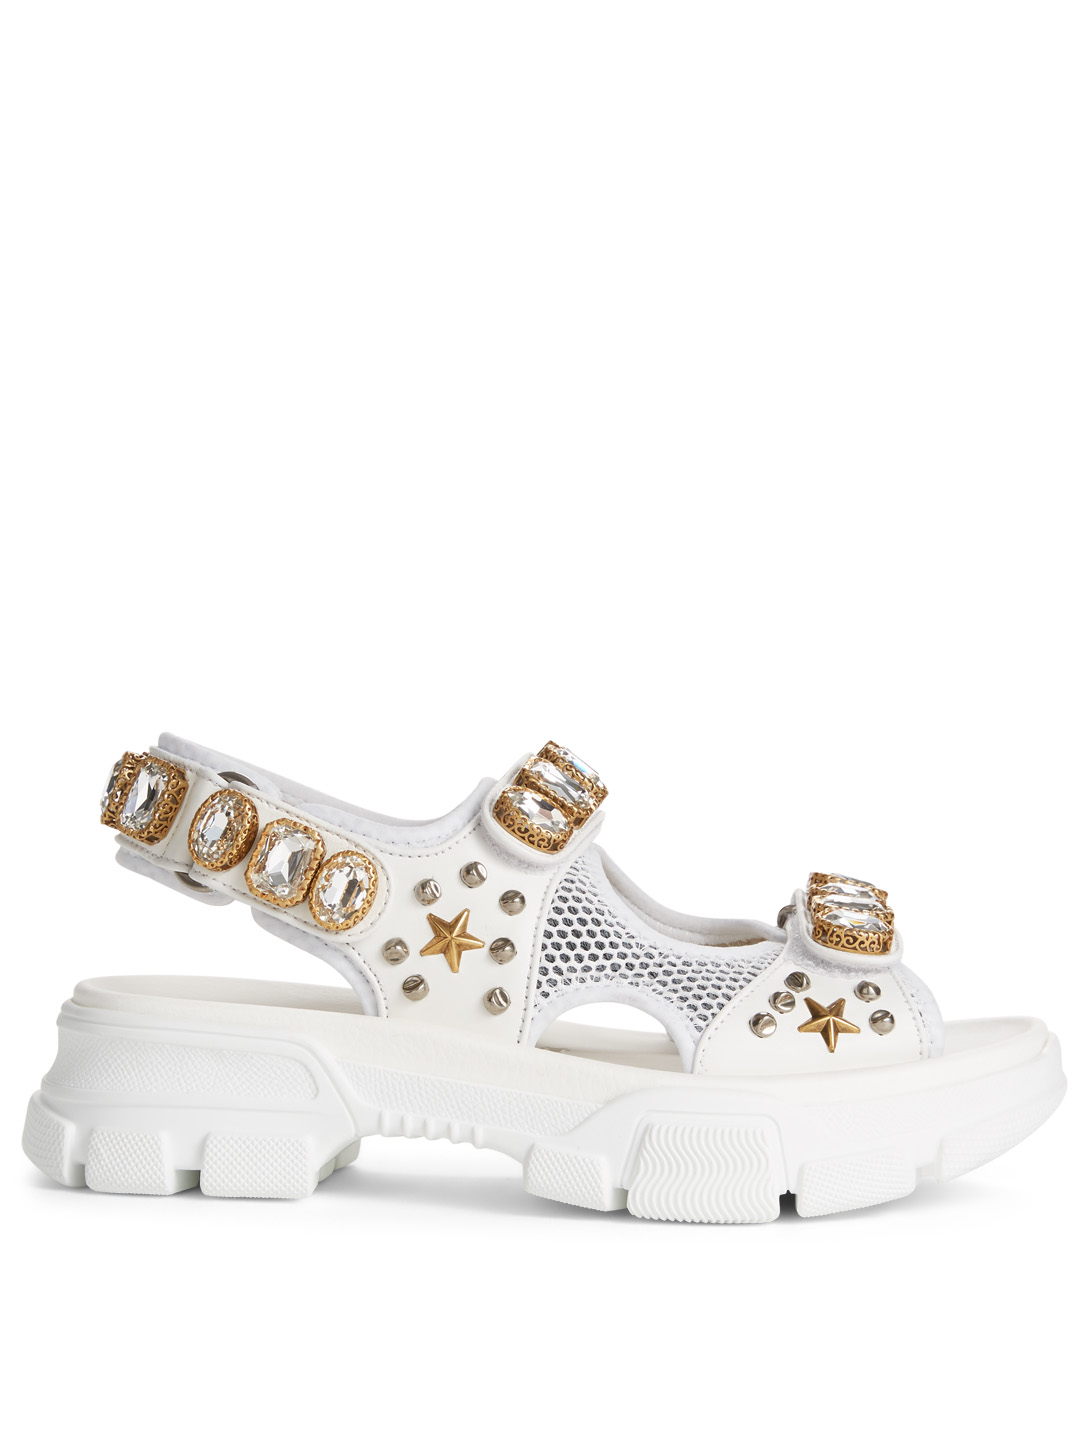 d859e4ee4b5 GUCCI Leather And Mesh Sandals With Crystals Women s White ...